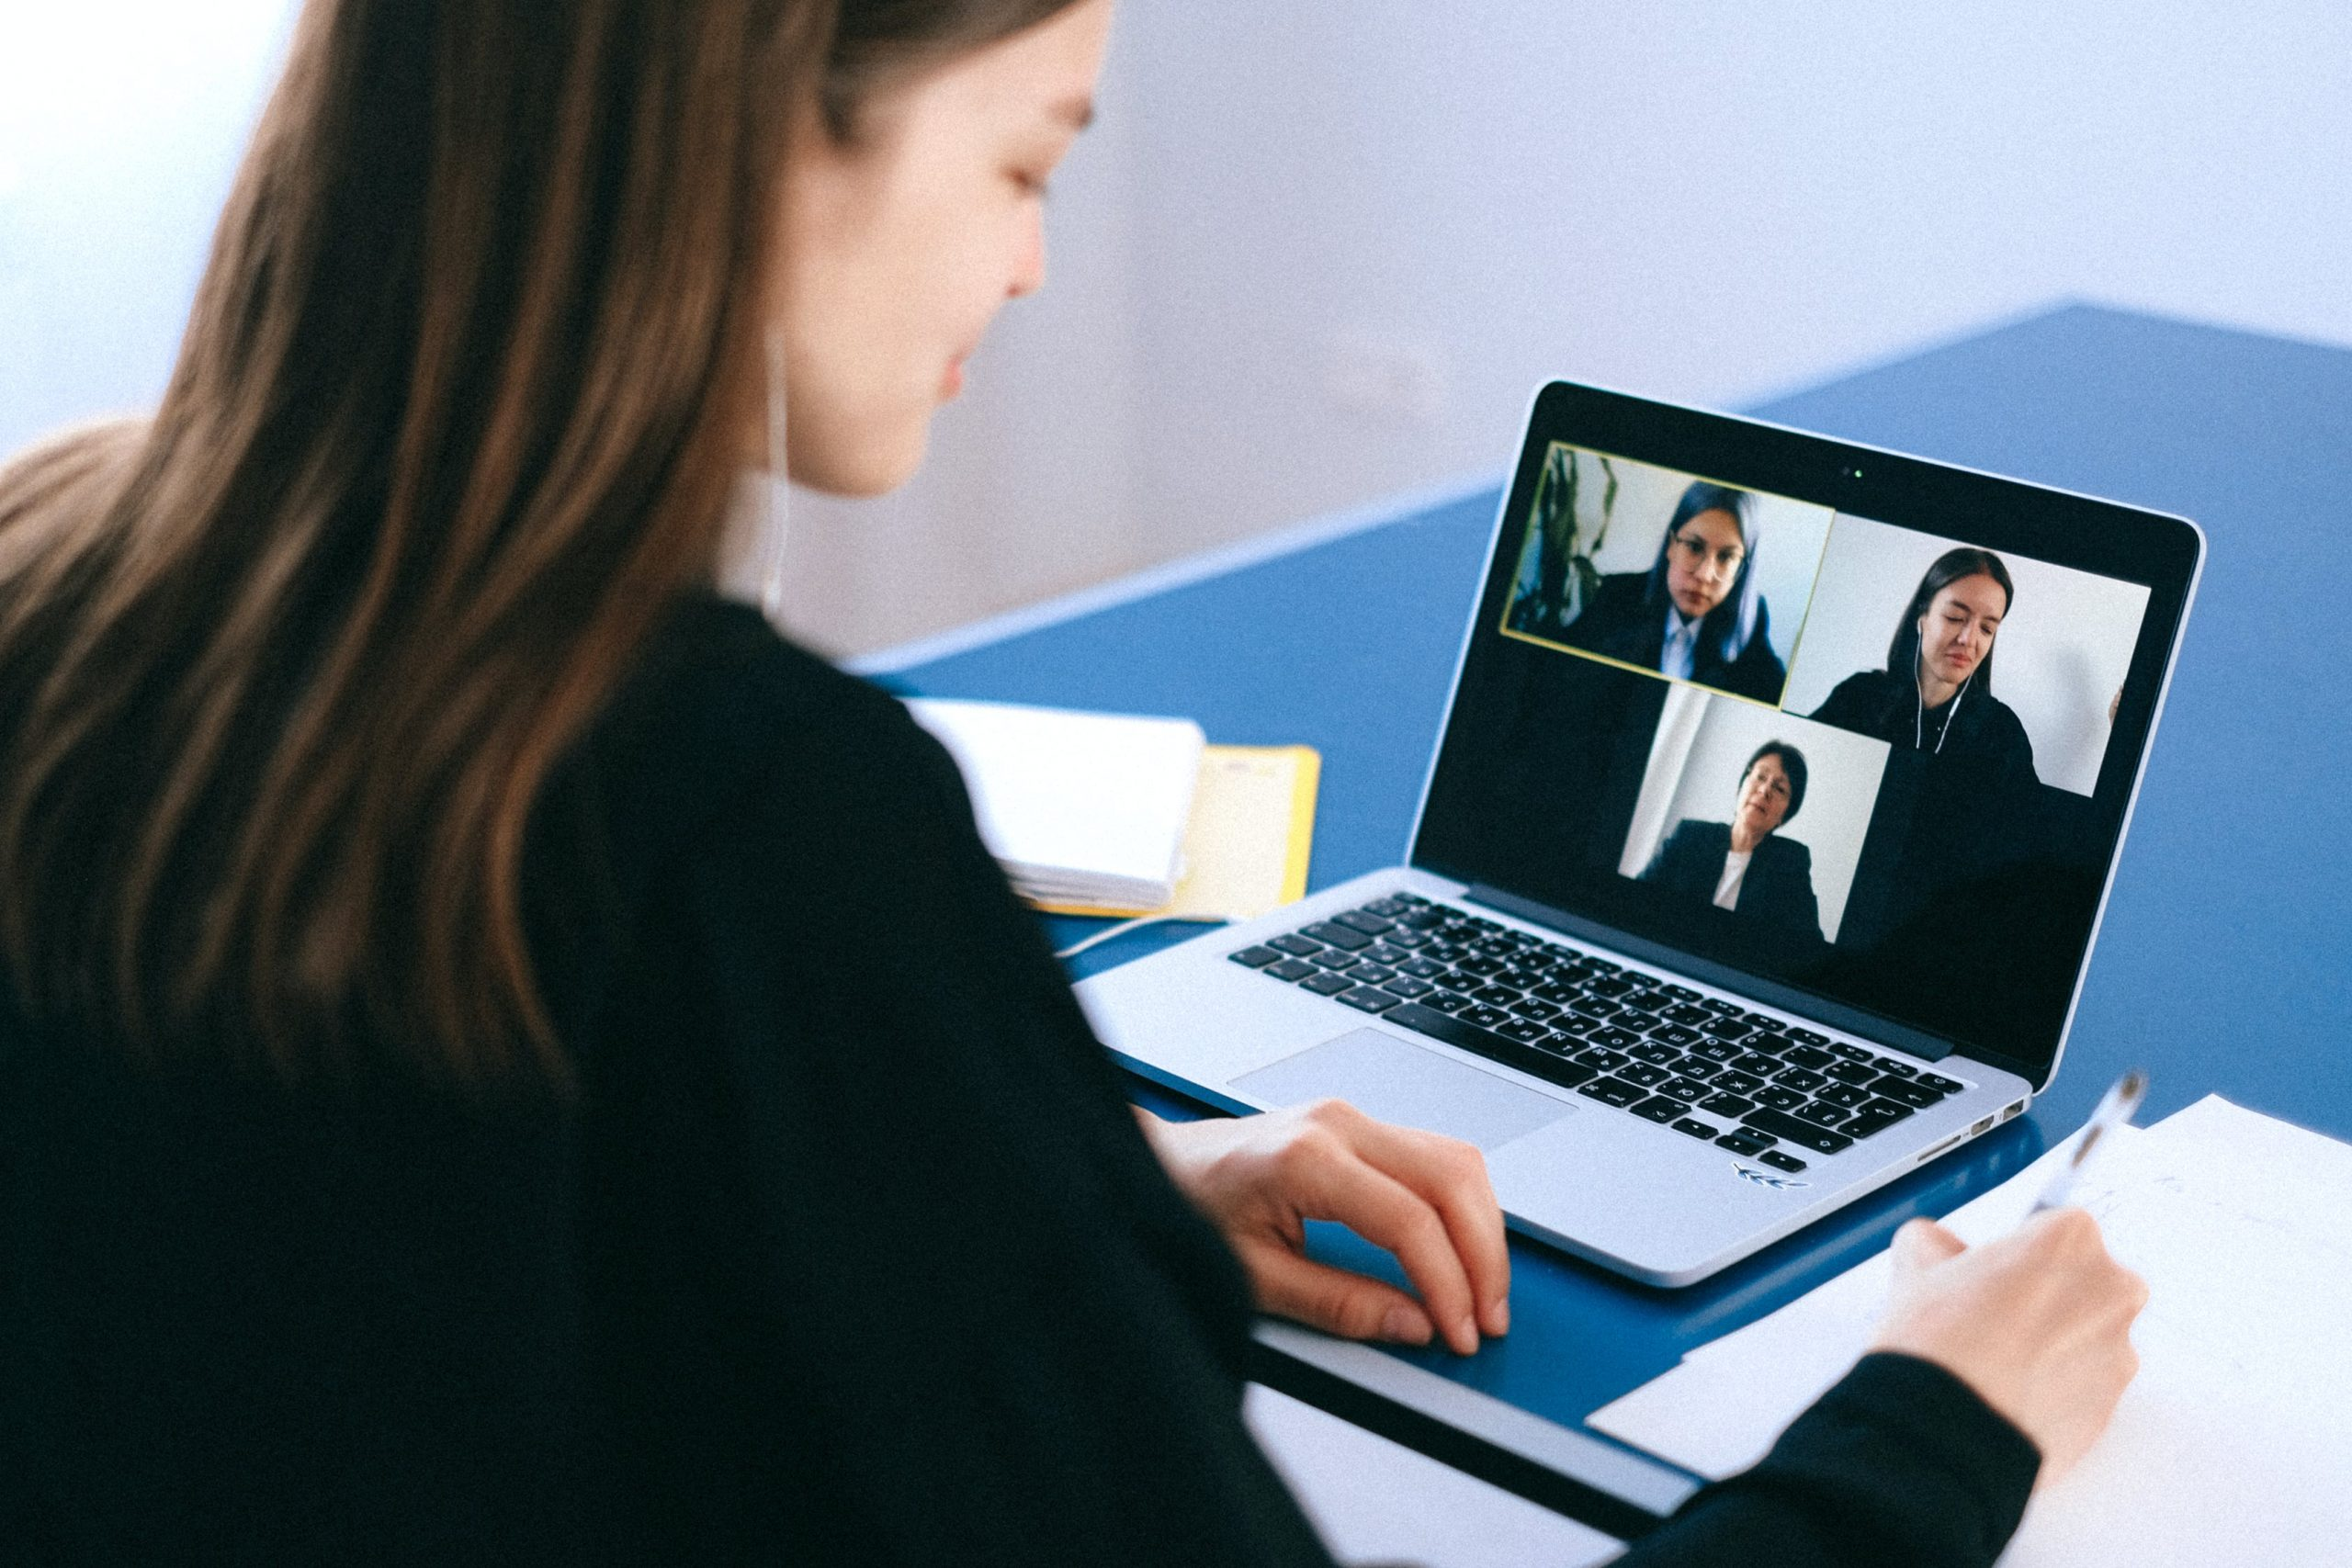 Tips to Help Virtual Meeting Participants Feel Greater Psychological Safety